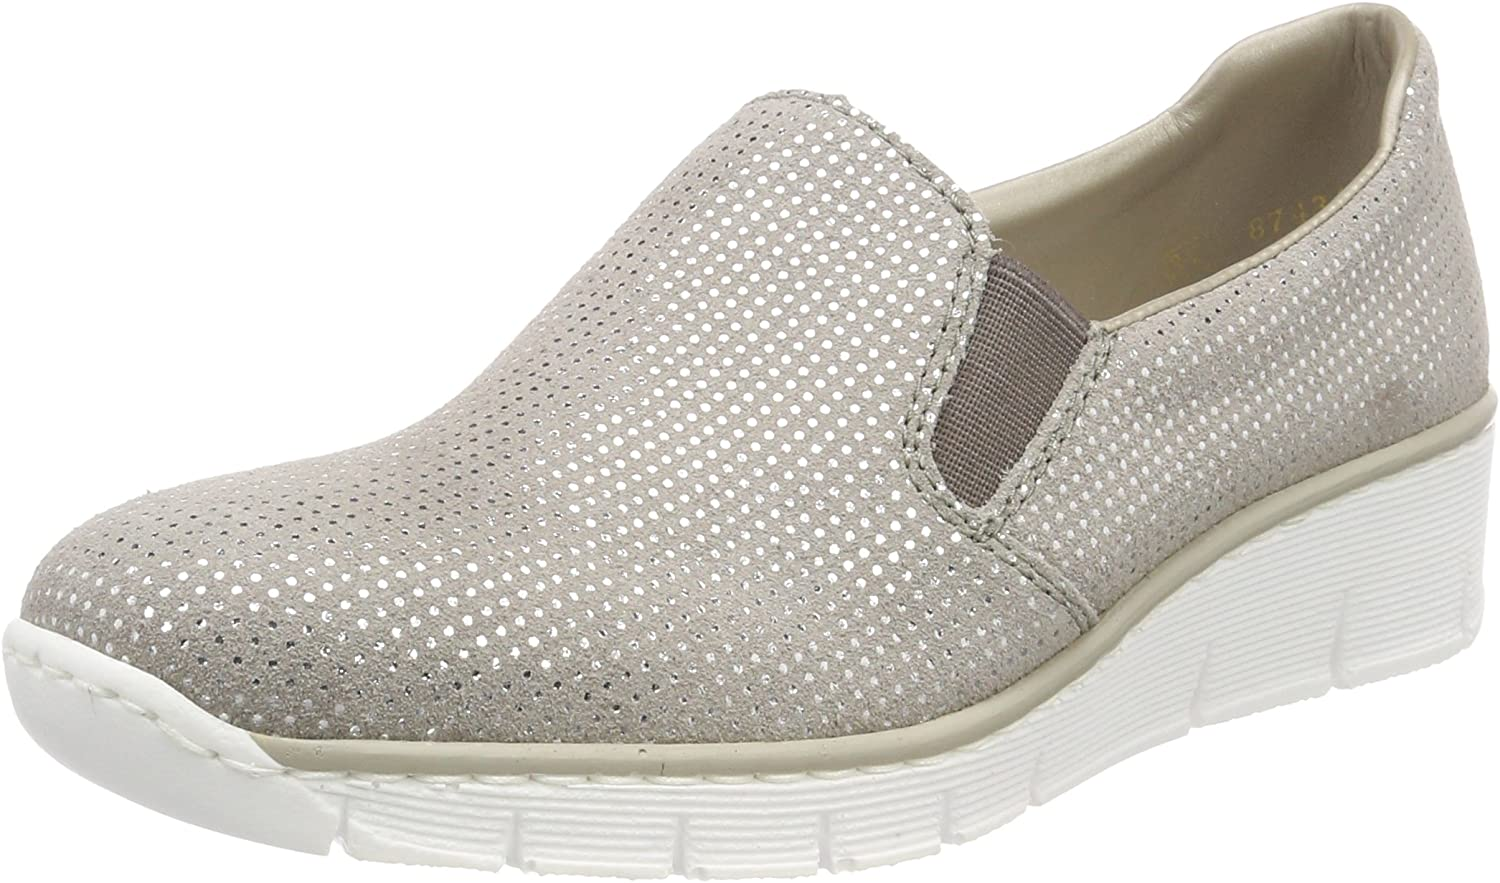 Rieker New product Factory outlet type Women's N5678-91 Sneakers Low-Top